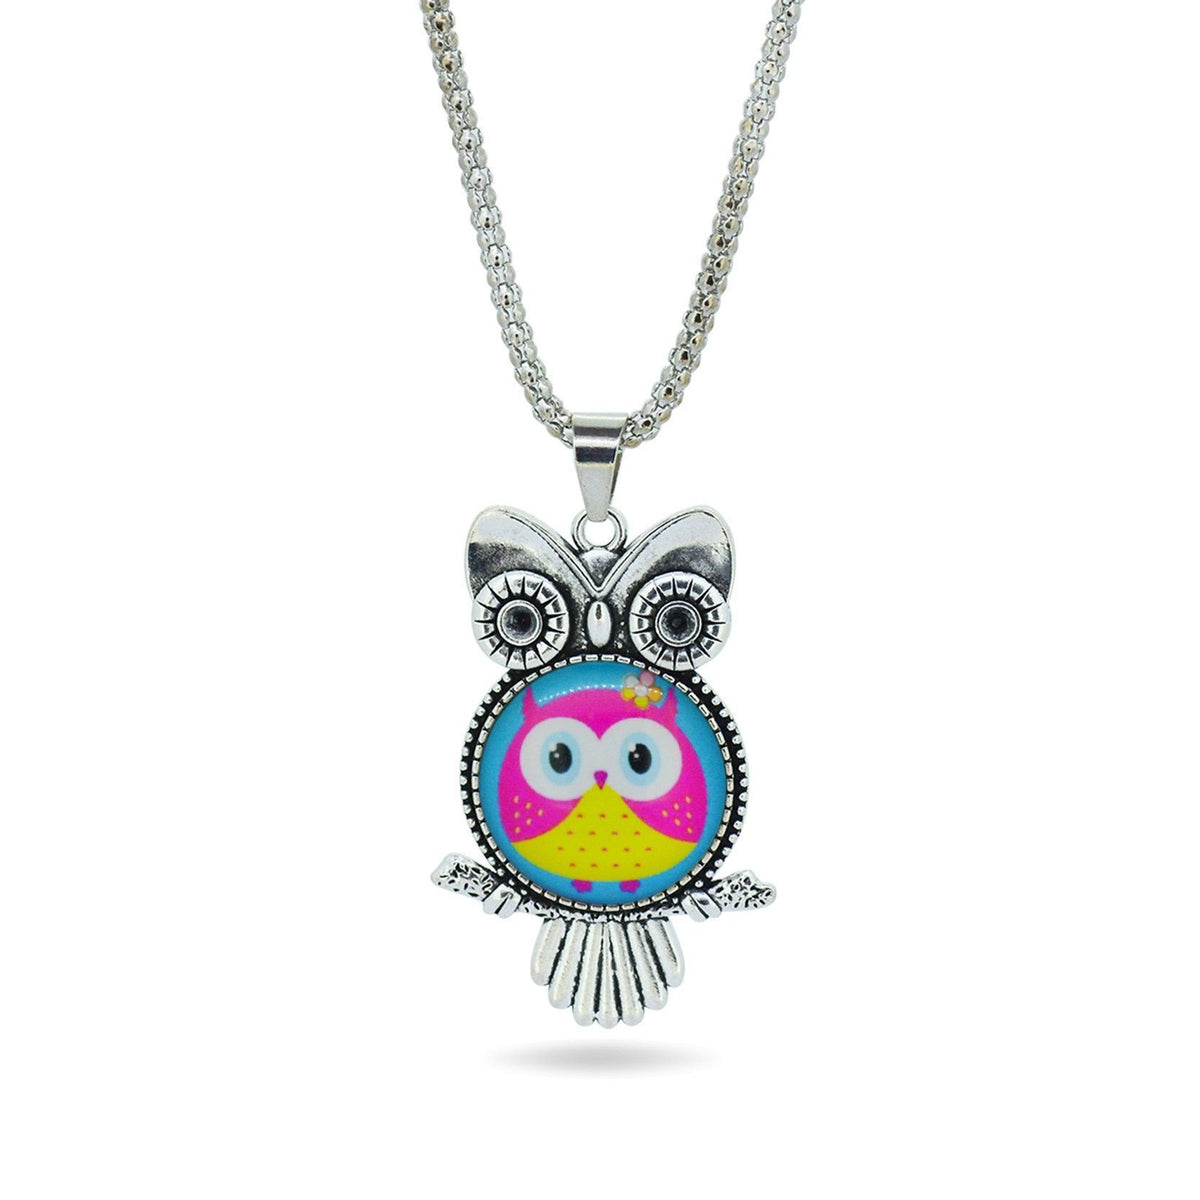 Glass Owl Pendant Necklace